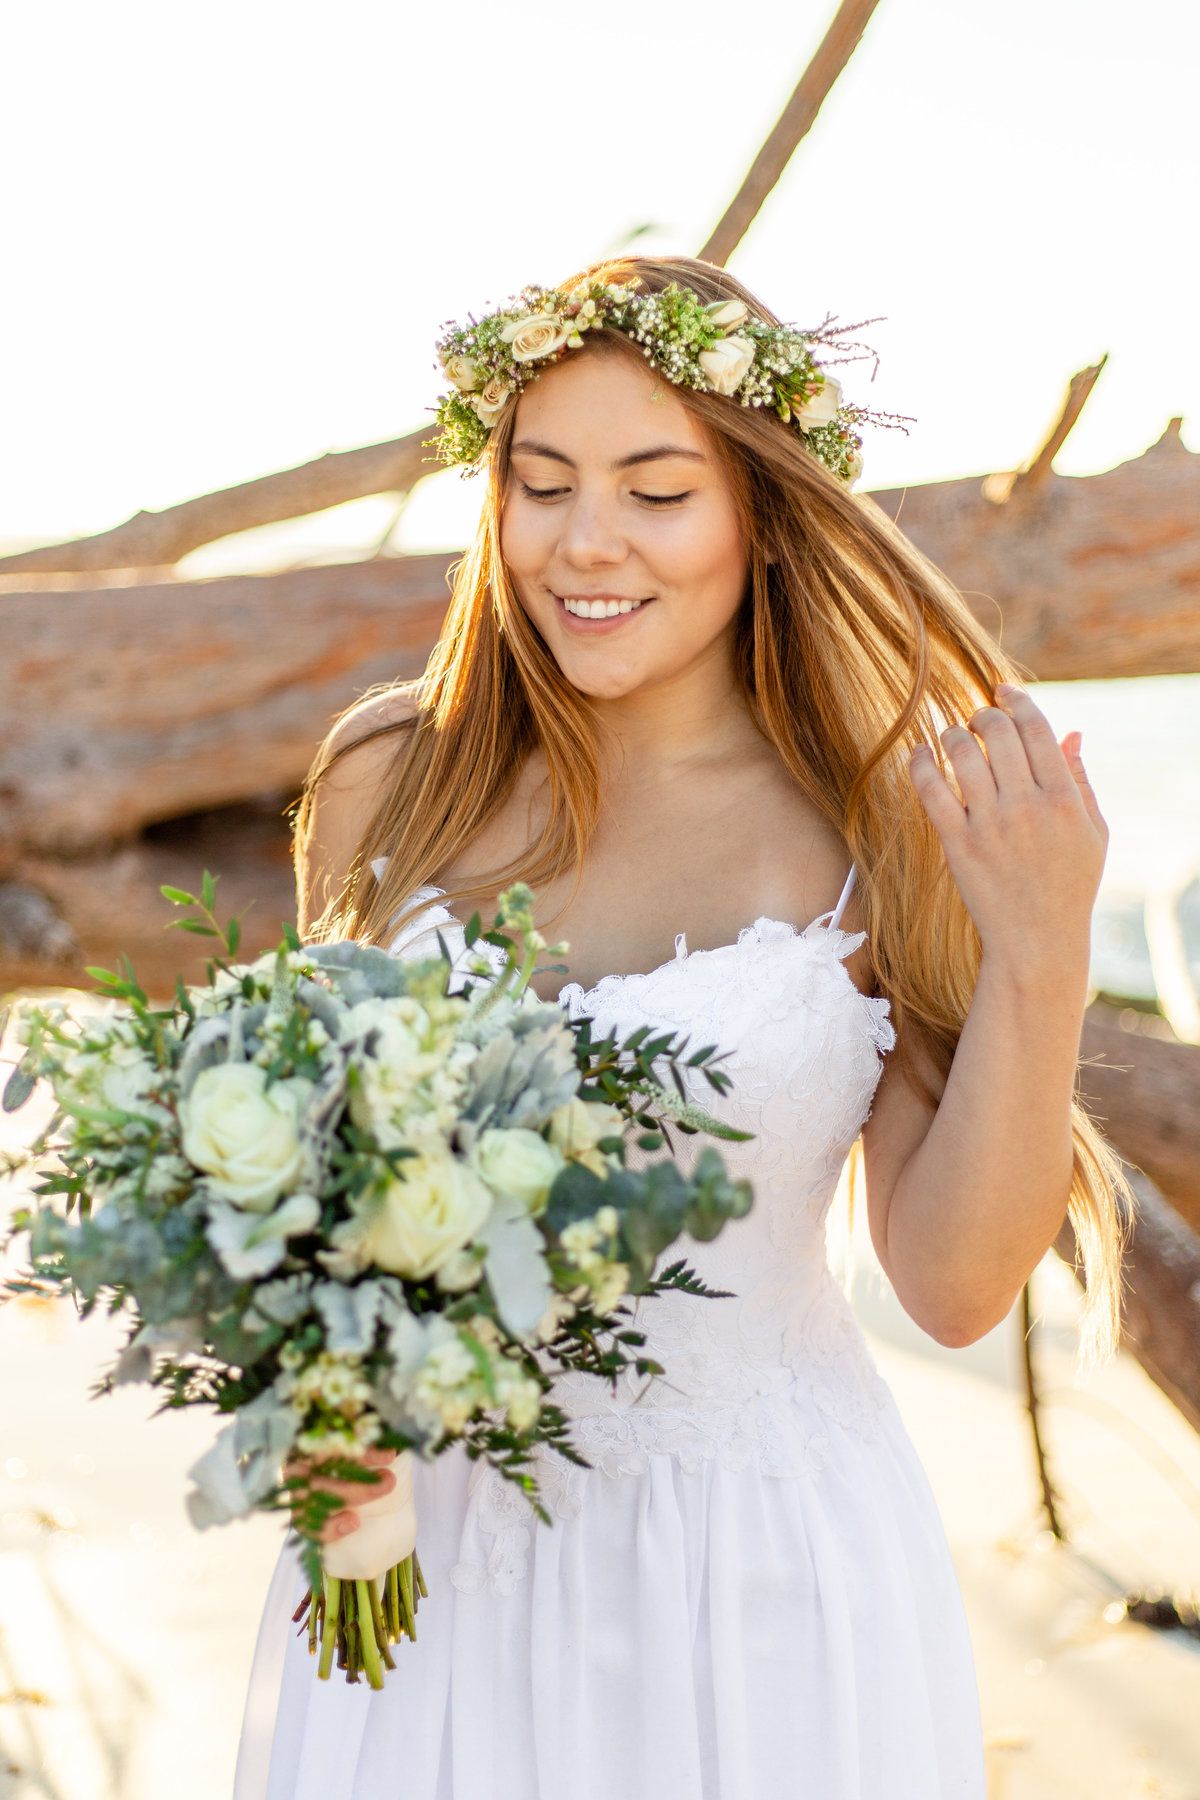 Bride in white and green flower crown sweeps long hair out of her face as she looks at her bridal bouquet on a beach in St. Petersburg, Florida